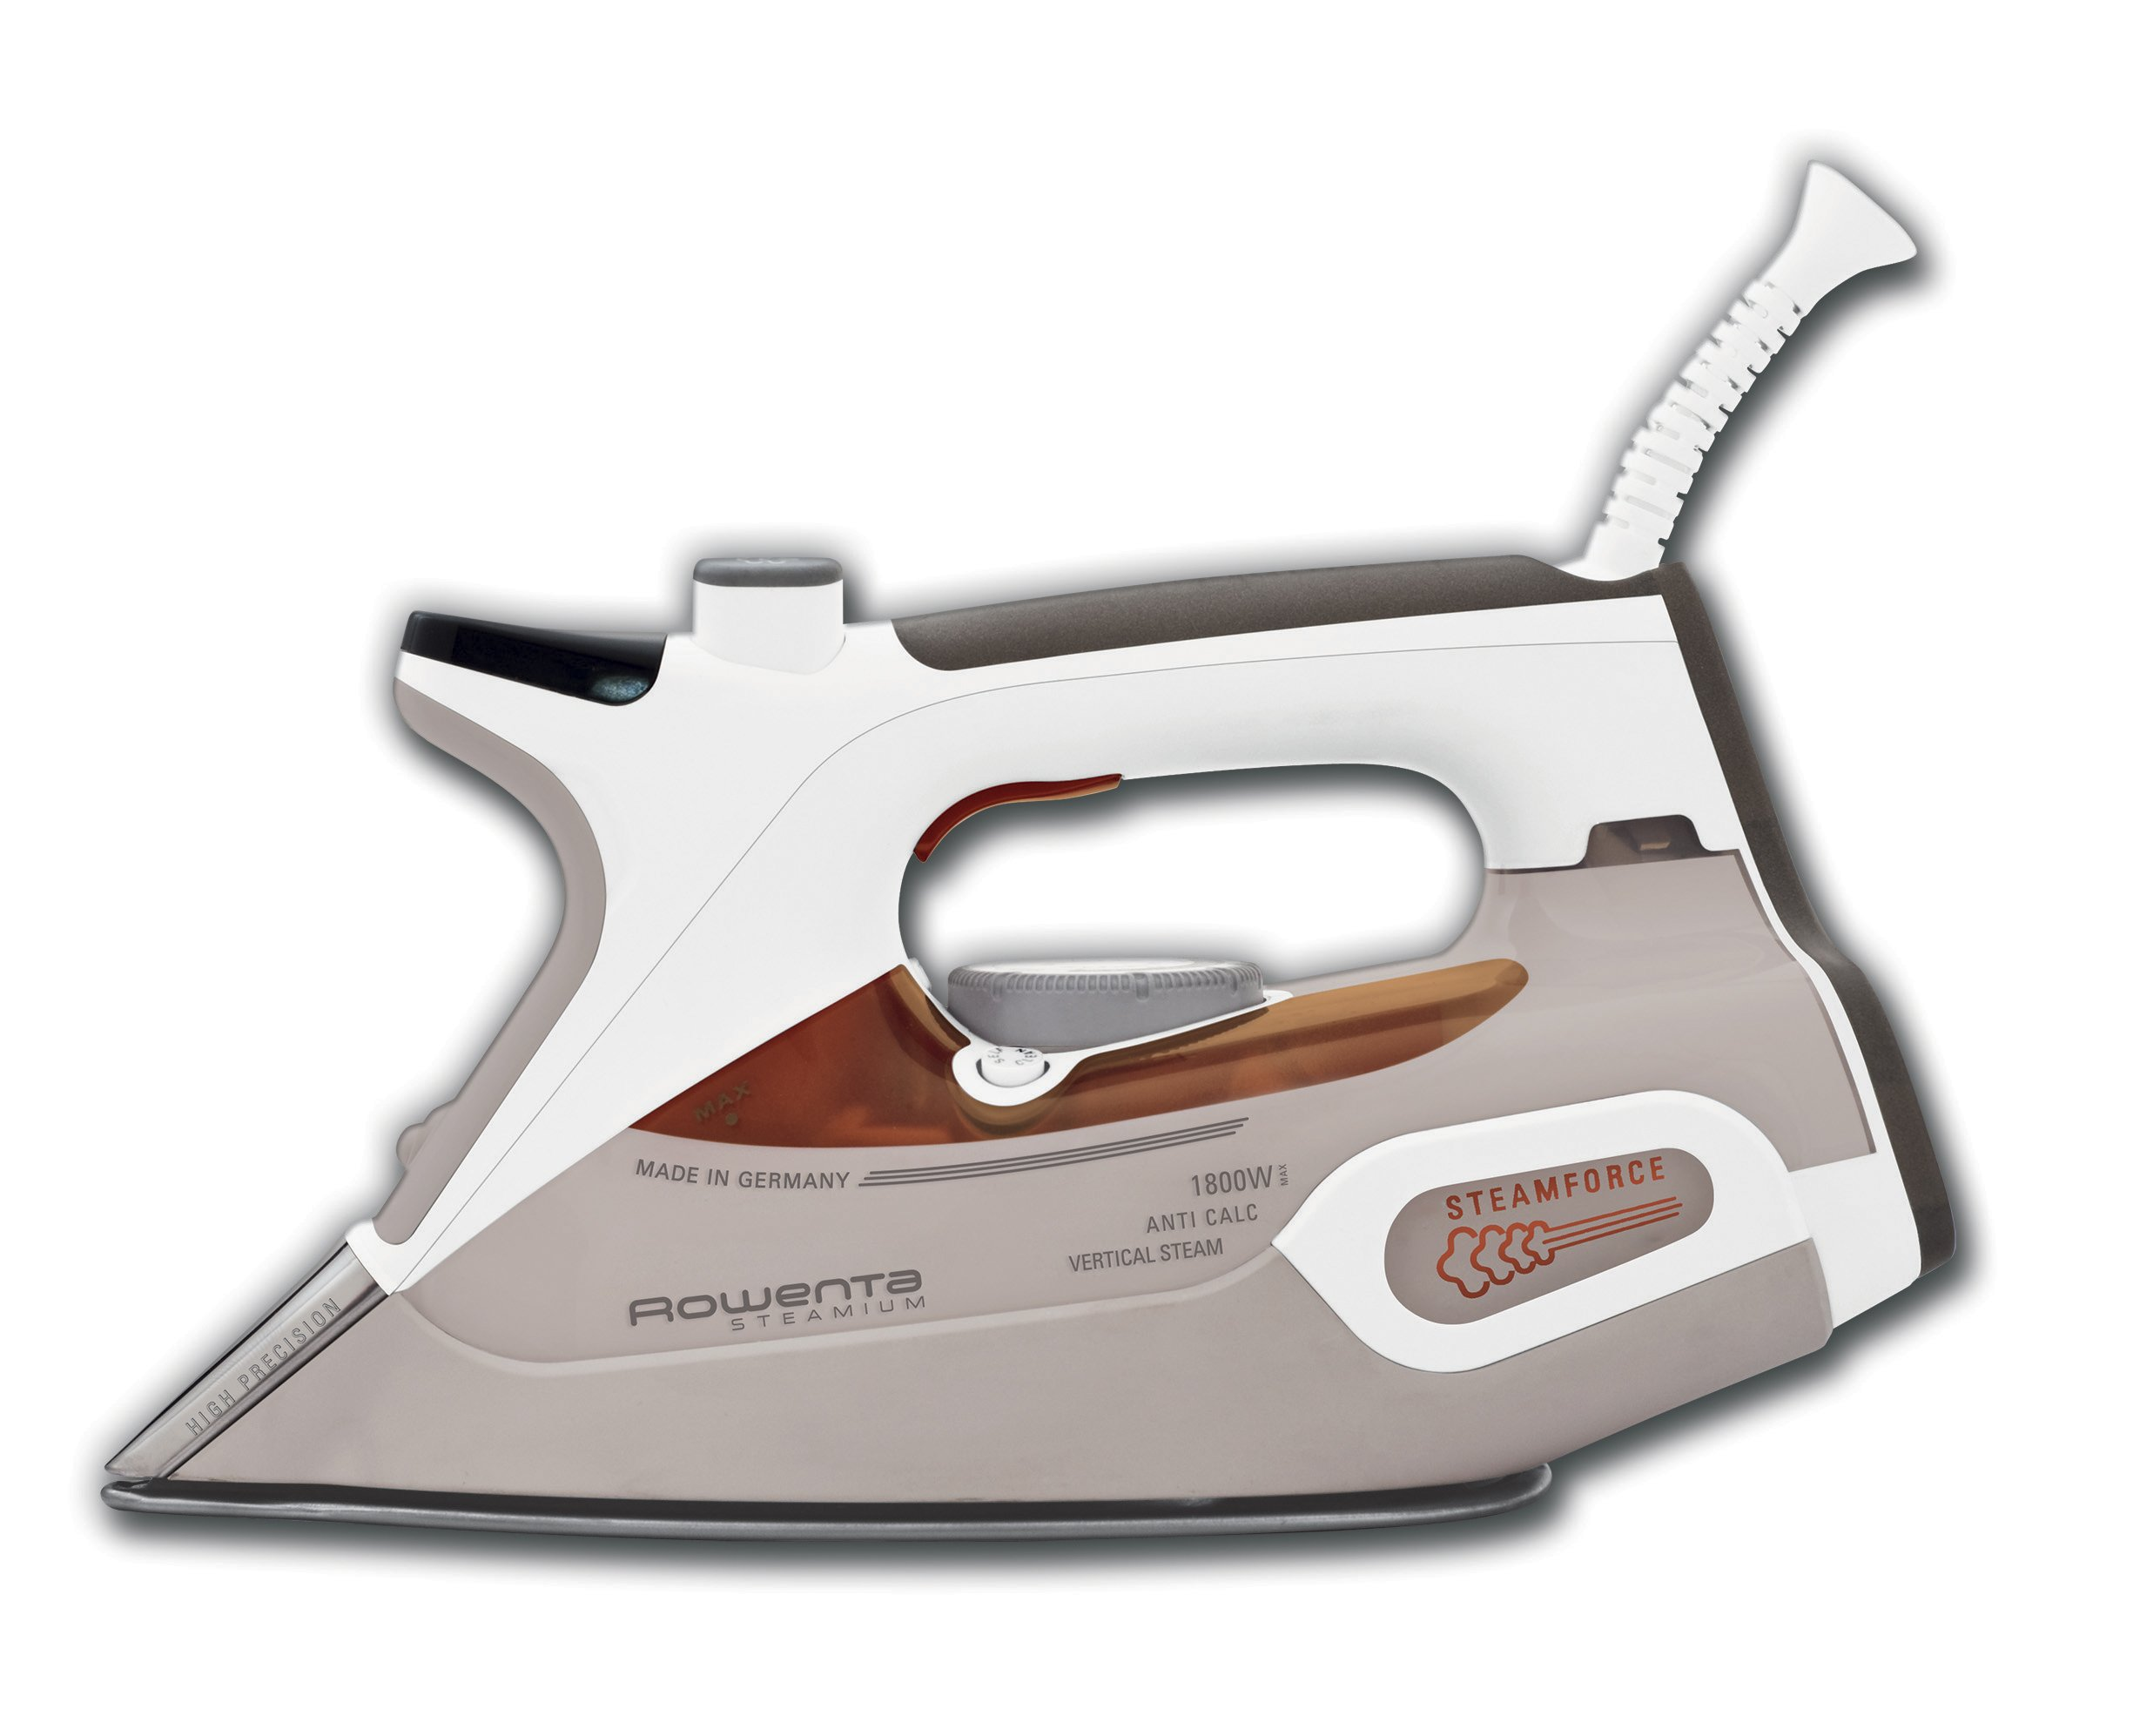 Rowenta DW9081 Steamium 1800-Watt Professional Steam Iron with LCD screen Stainless Steel Soleplate with Auto-Off, 400-Hole, Brown by Rowenta